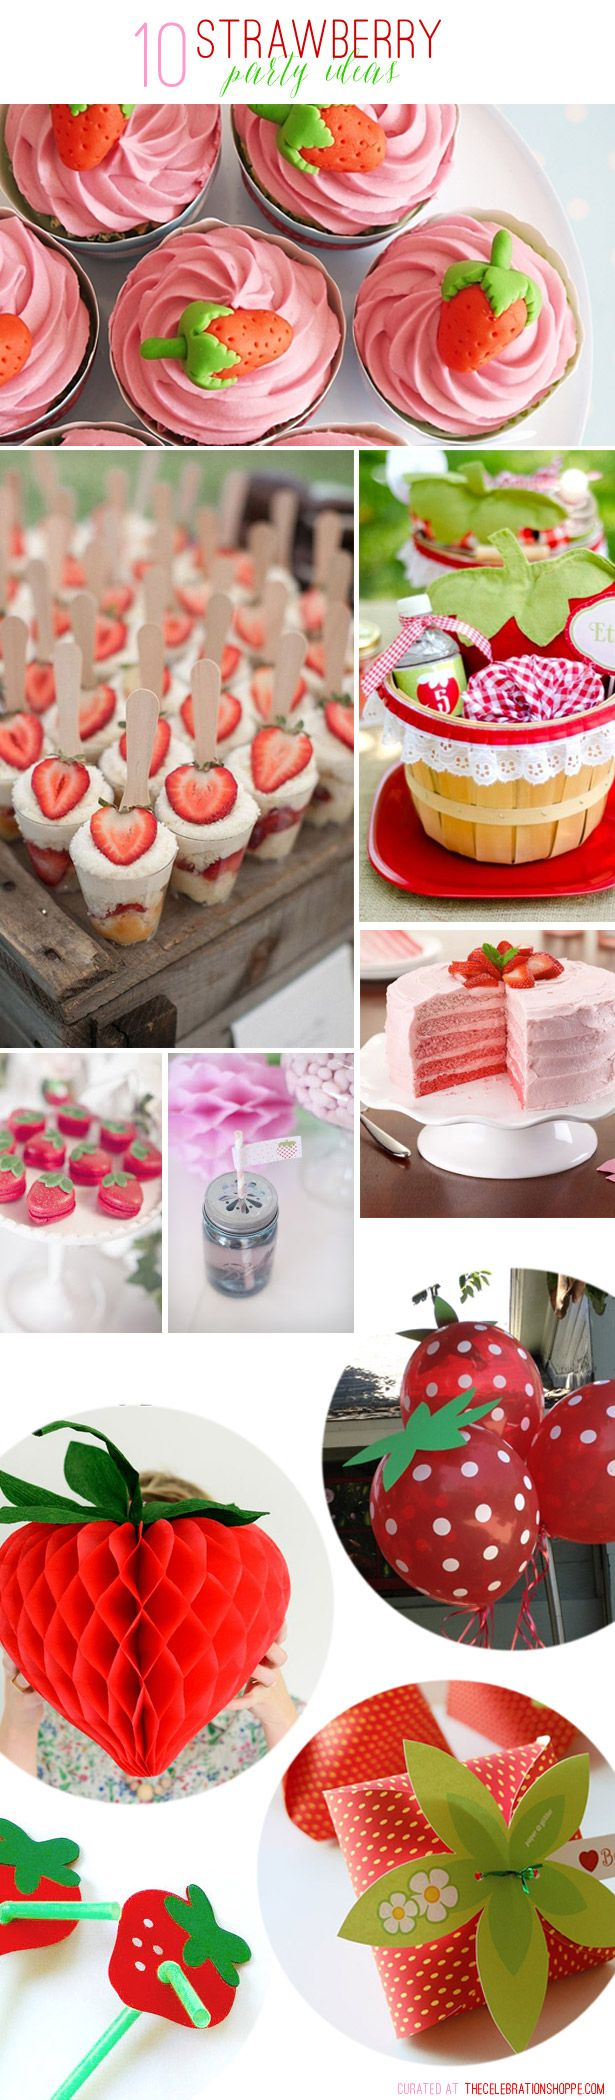 Strawberries are in full bloom and that means strawberry shortcakes, cupcakes, ombre cakes. Mmmm. And all this yummy food makes